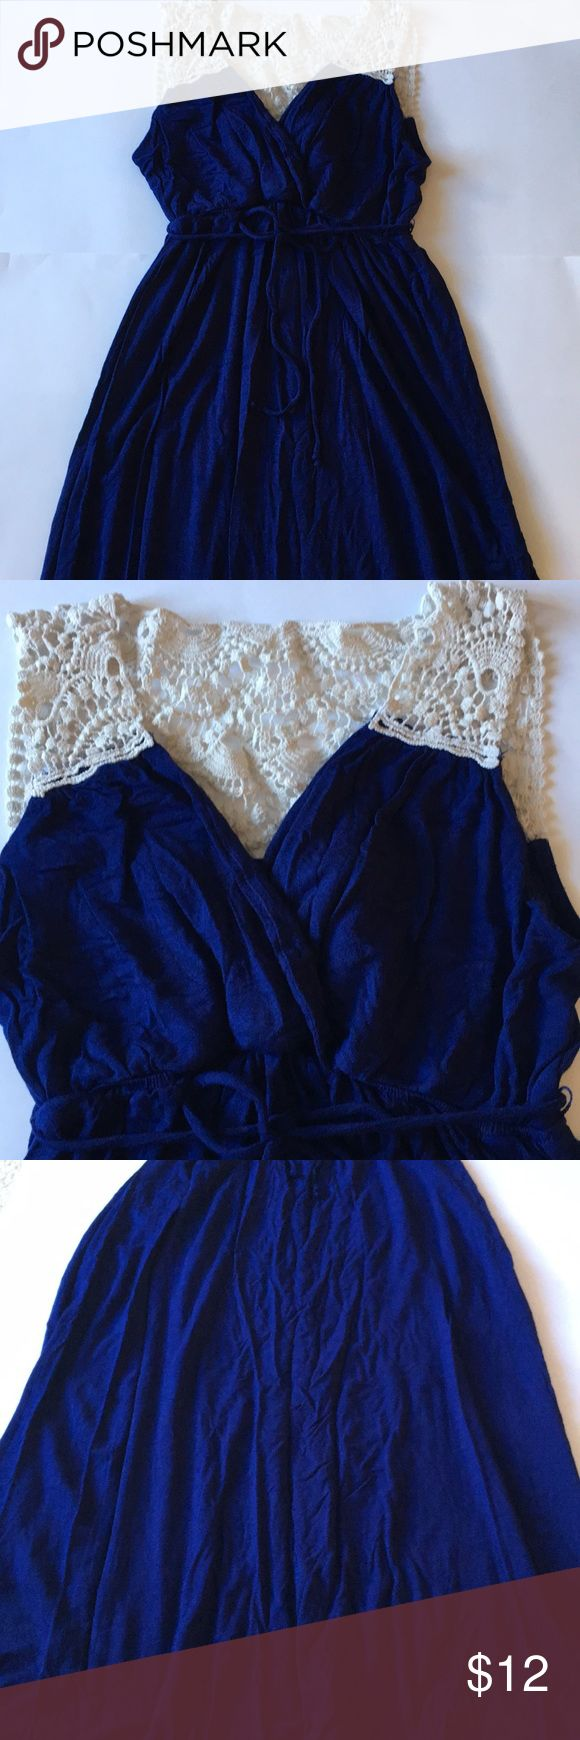 Motherhood Maternity dark blue maxi dress Motherhood Maternity blue maxi dress. Lace shoulder detail and on the back. Bow tie around the high waist, can be taken off. Love this dress!  Great condition. Perfect for Spring or Summer. Size Petite Medium. Motherhood Maternity Dresses Maxi